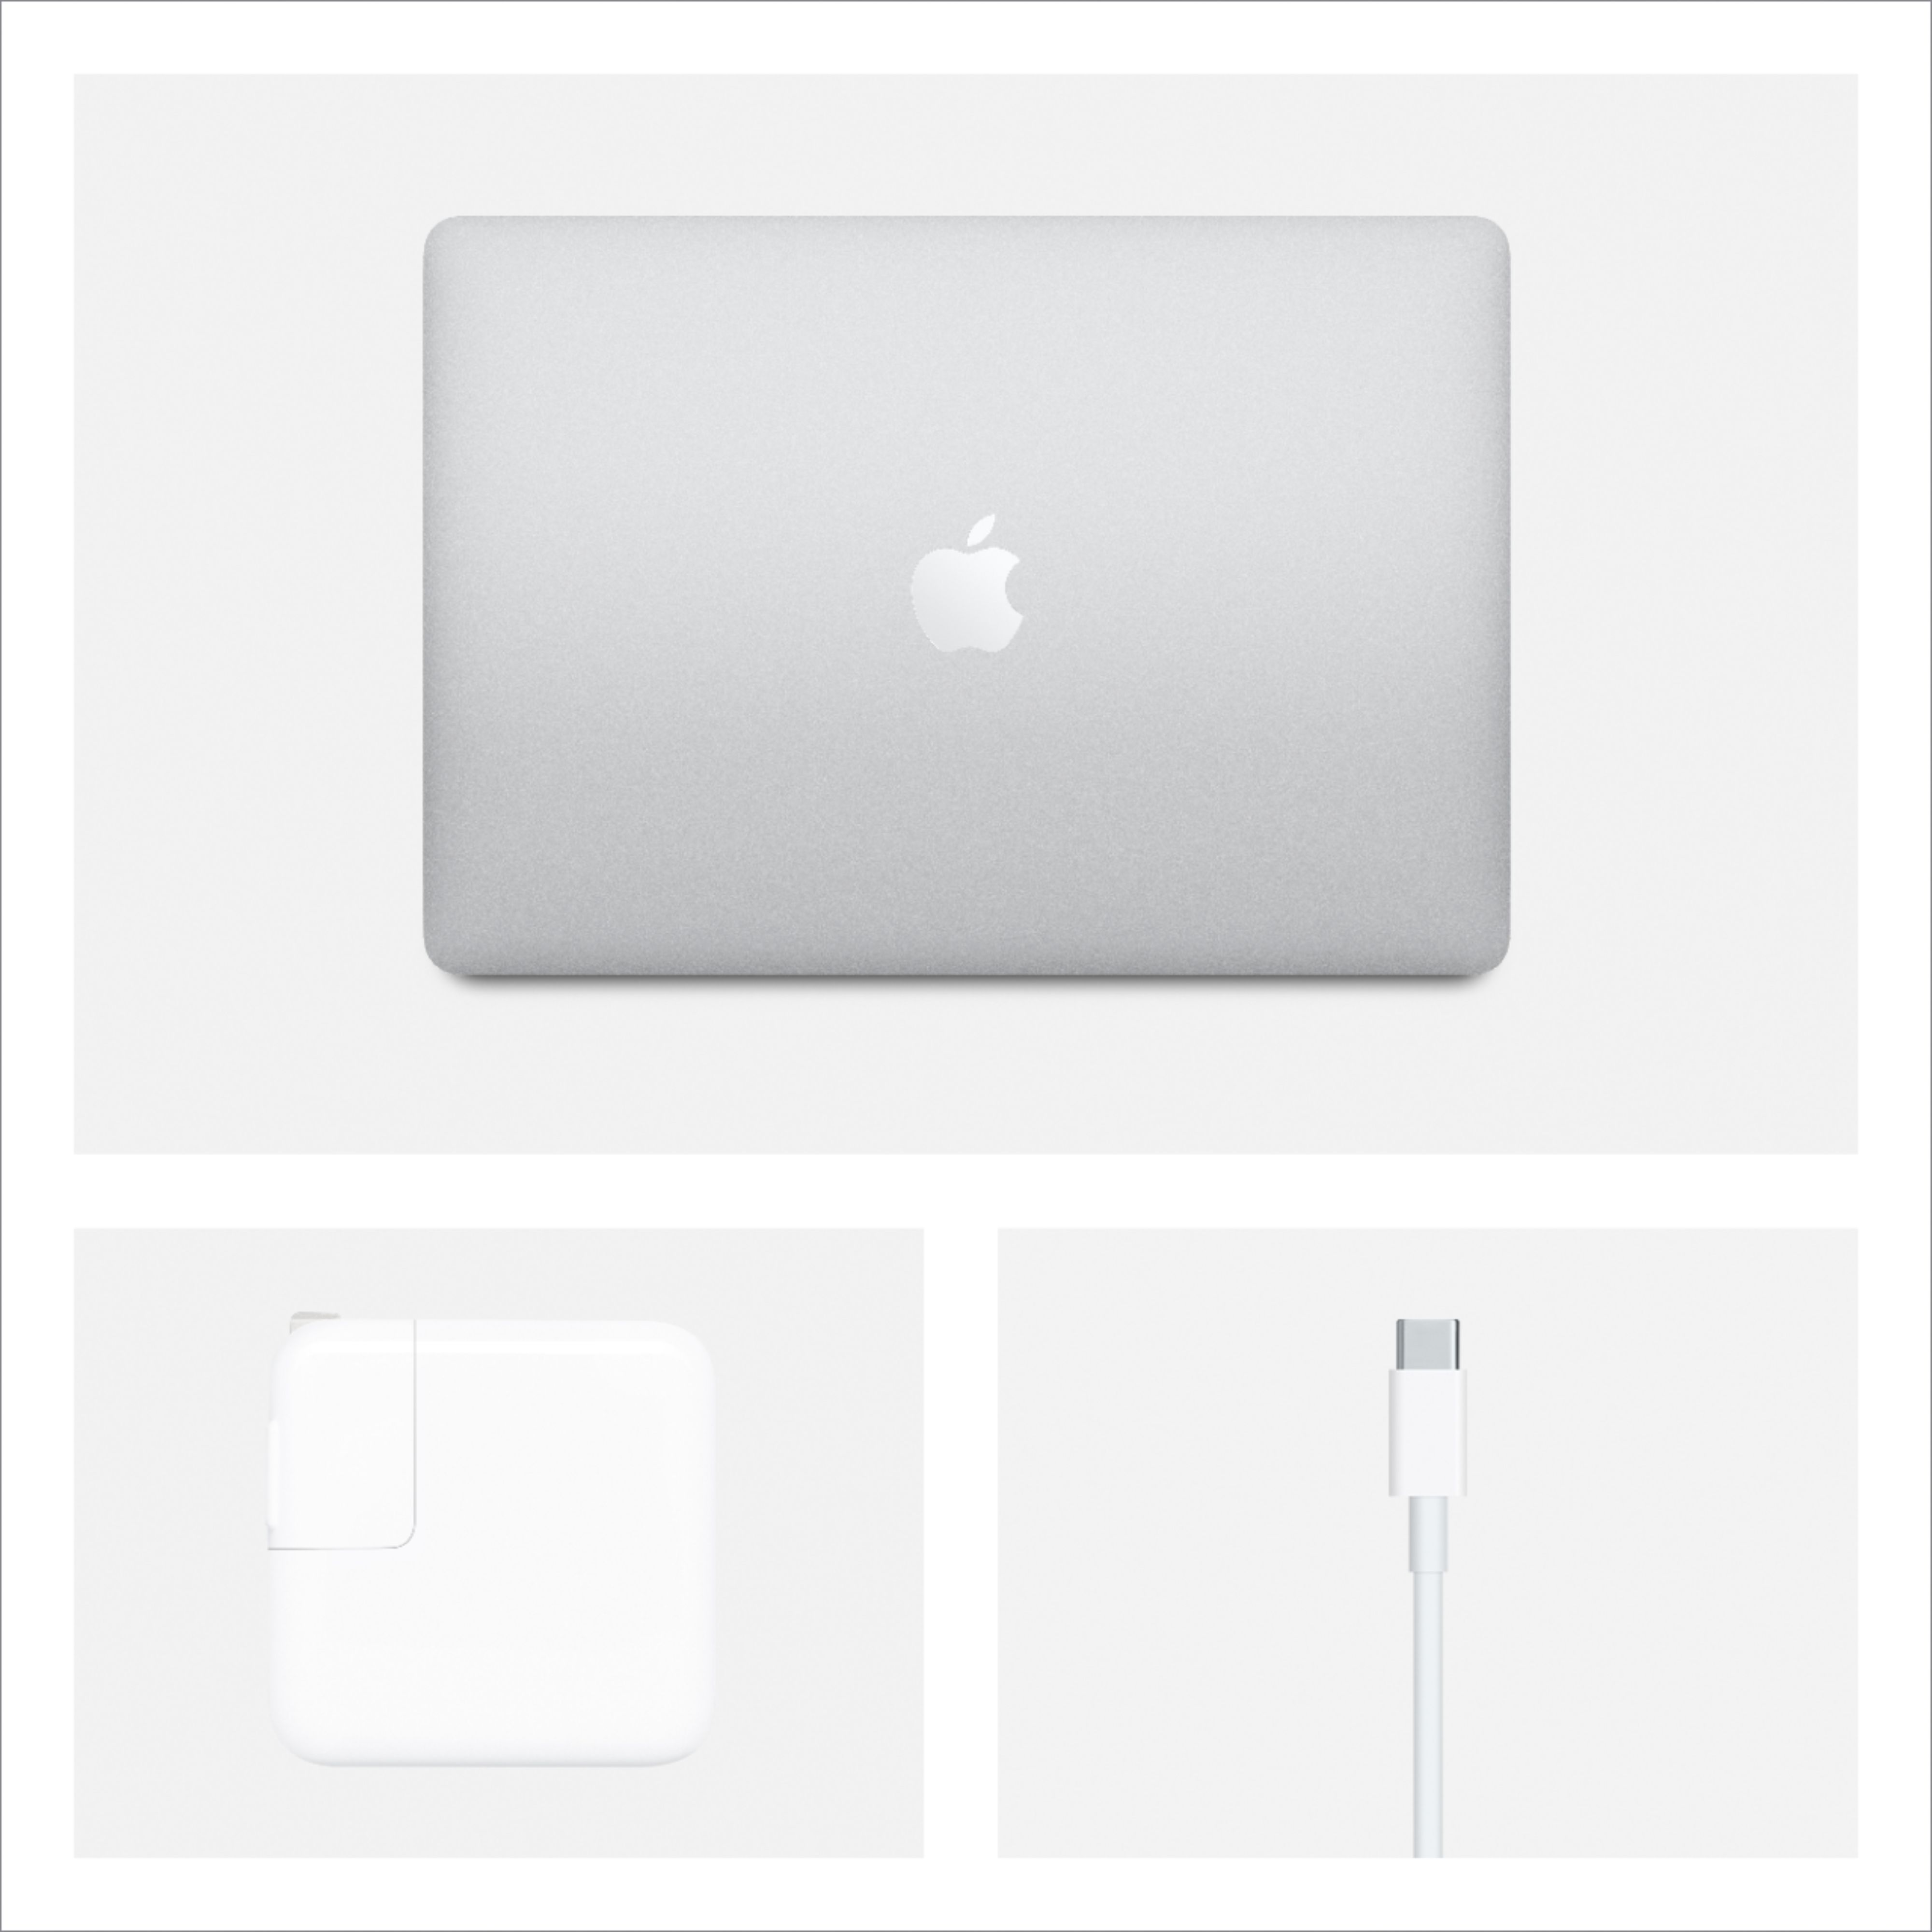 """Alt View Zoom 15. Apple - MacBook Air 13.3"""" Laptop with Touch ID - Intel Core i3 - 8GB Memory - 256GB Solid State Drive - Silver."""